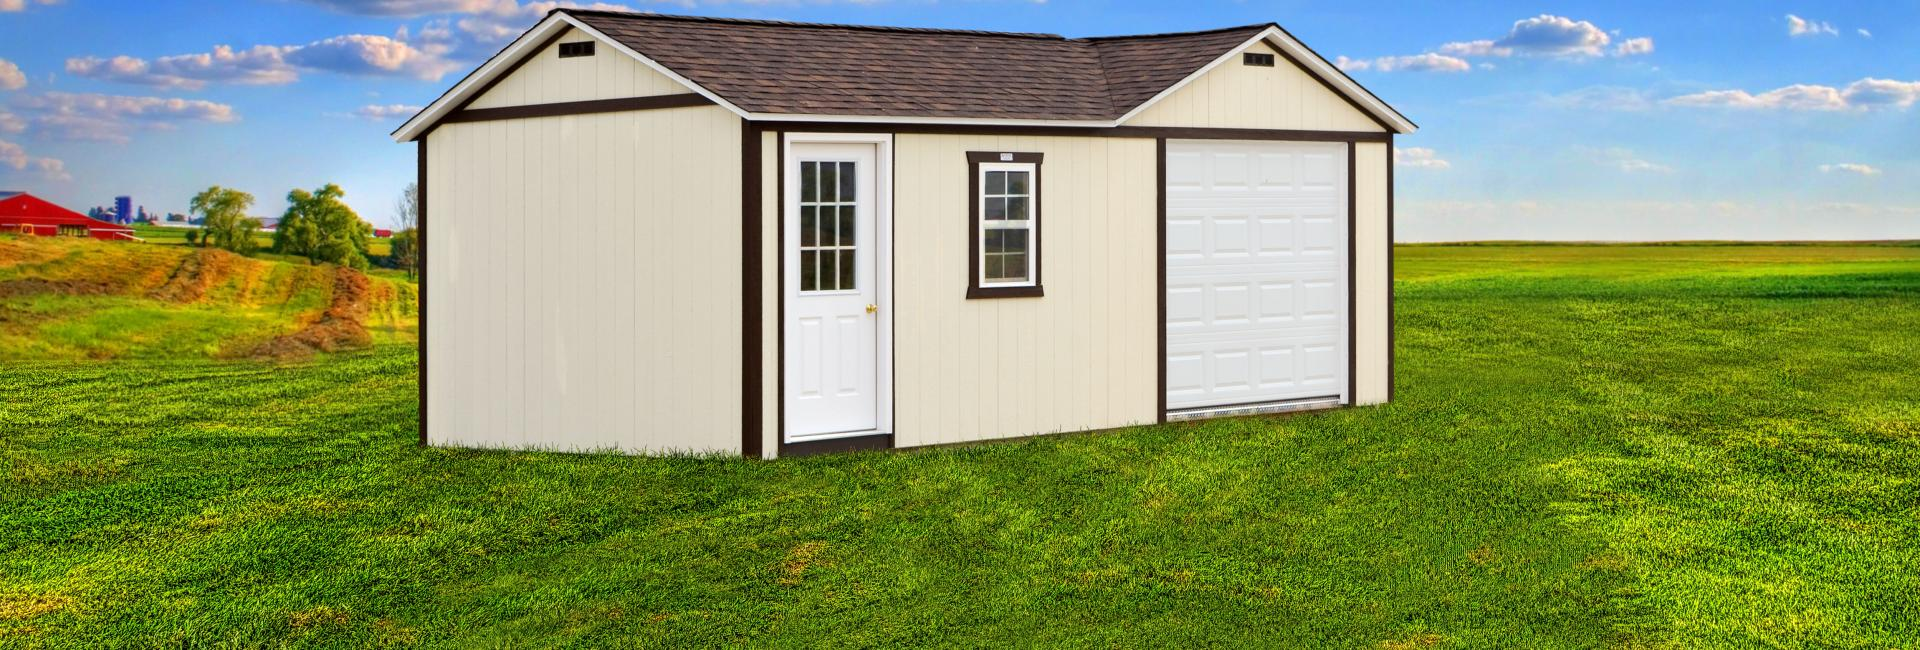 White garage combo shed with brown trim and shingle roof